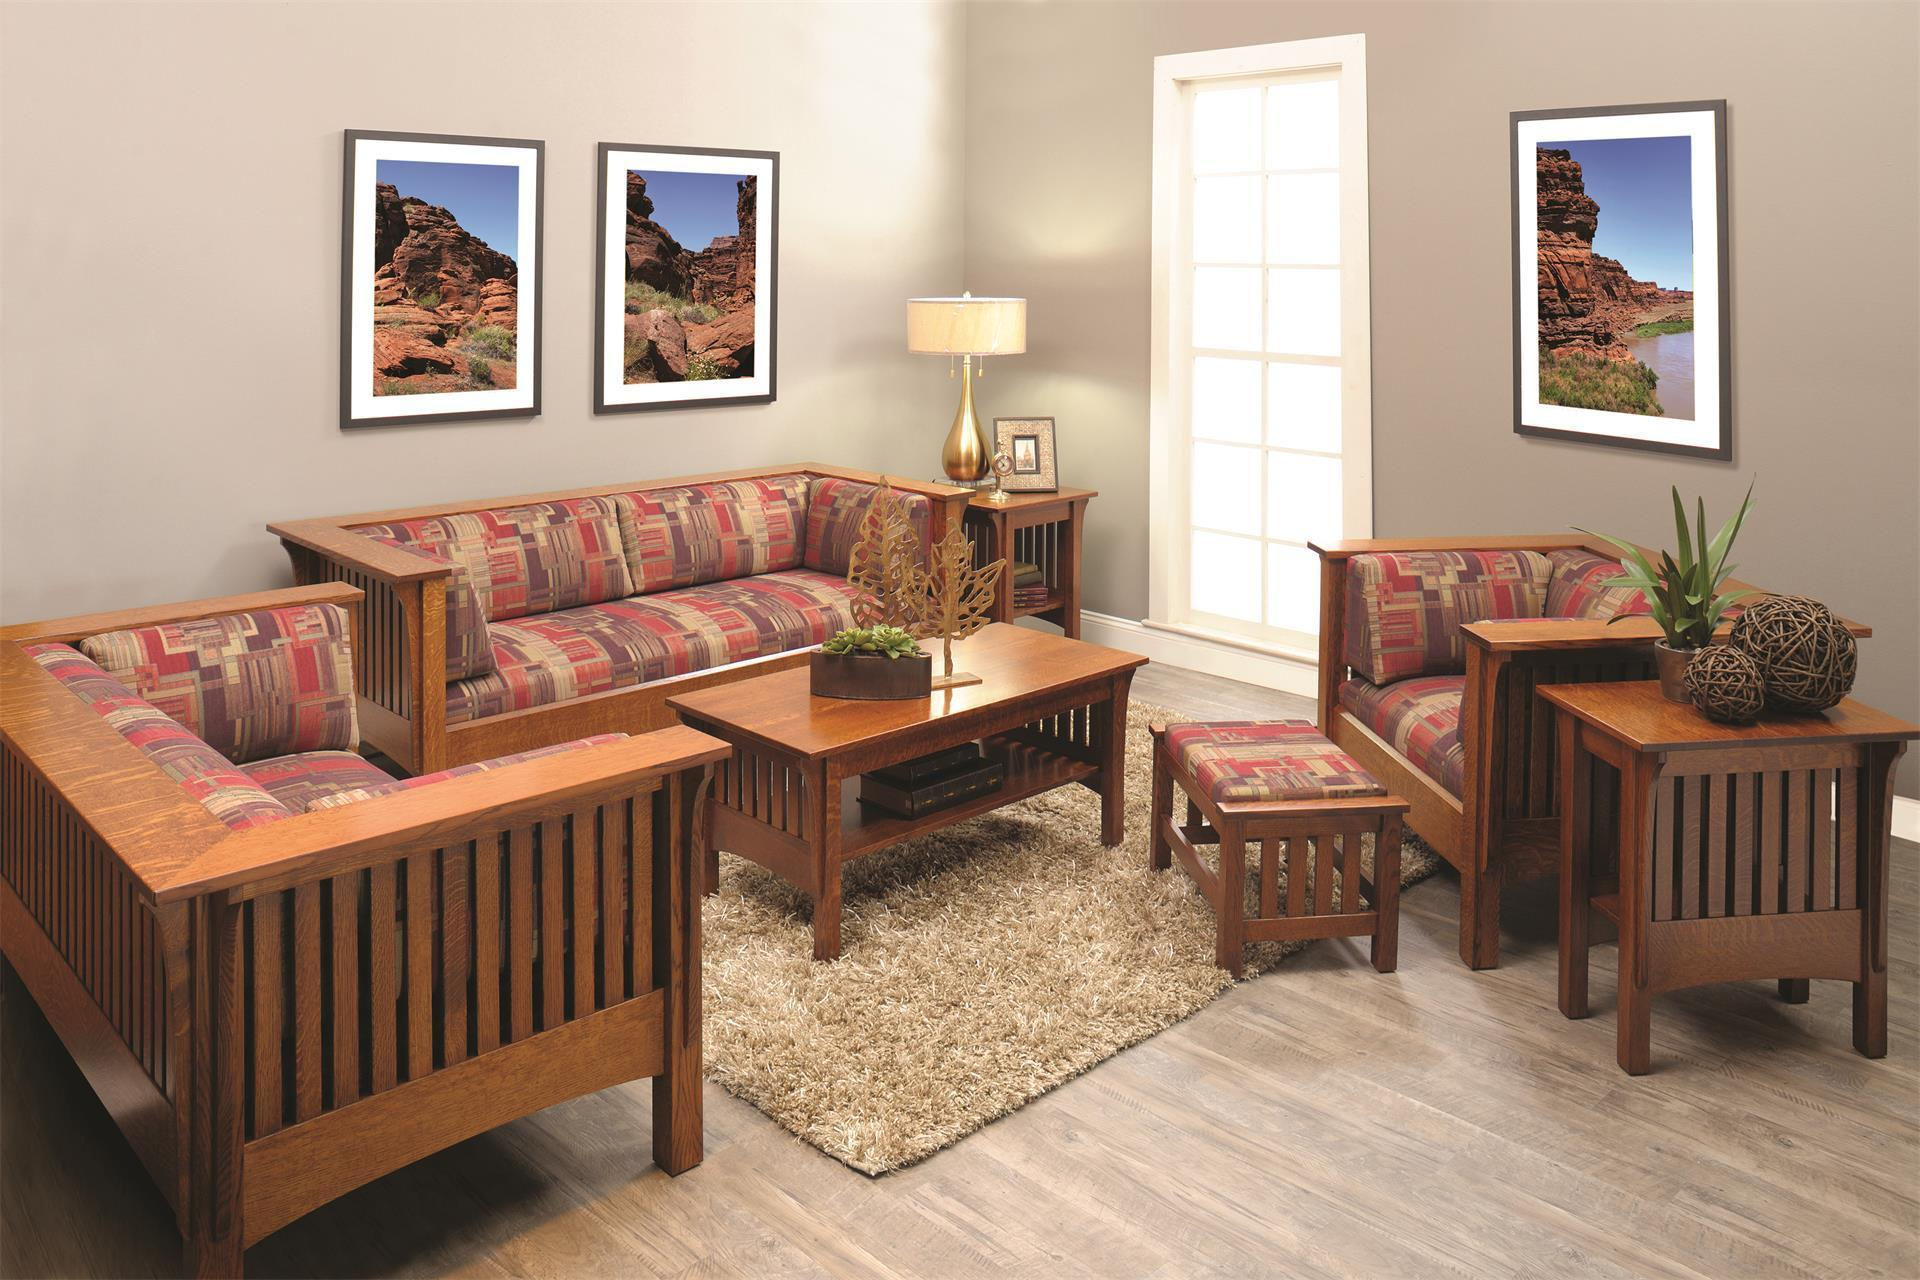 Shop The Look Mission Prairie Living Room Set